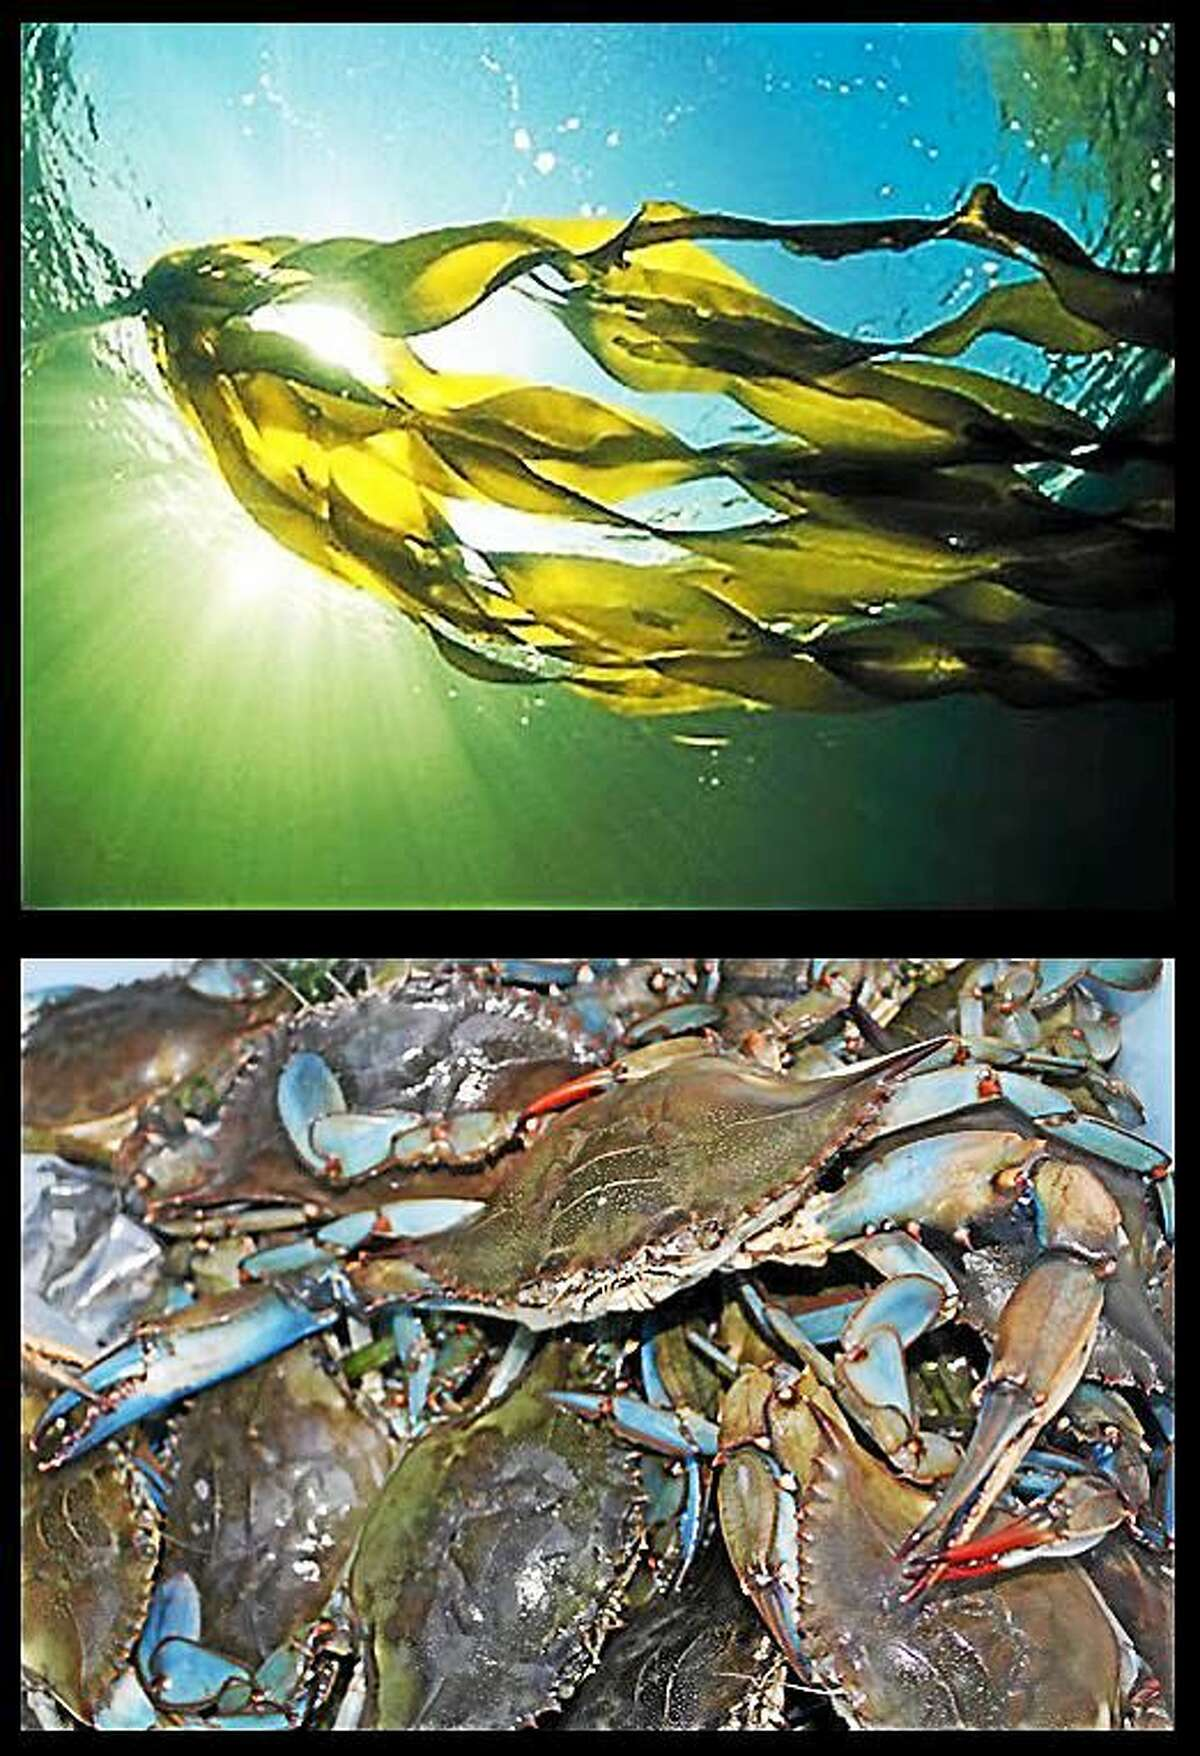 Westbrook Library will host Touch Tank: Seaweed Secrets, Shell Stories & Crab Life Saturday.